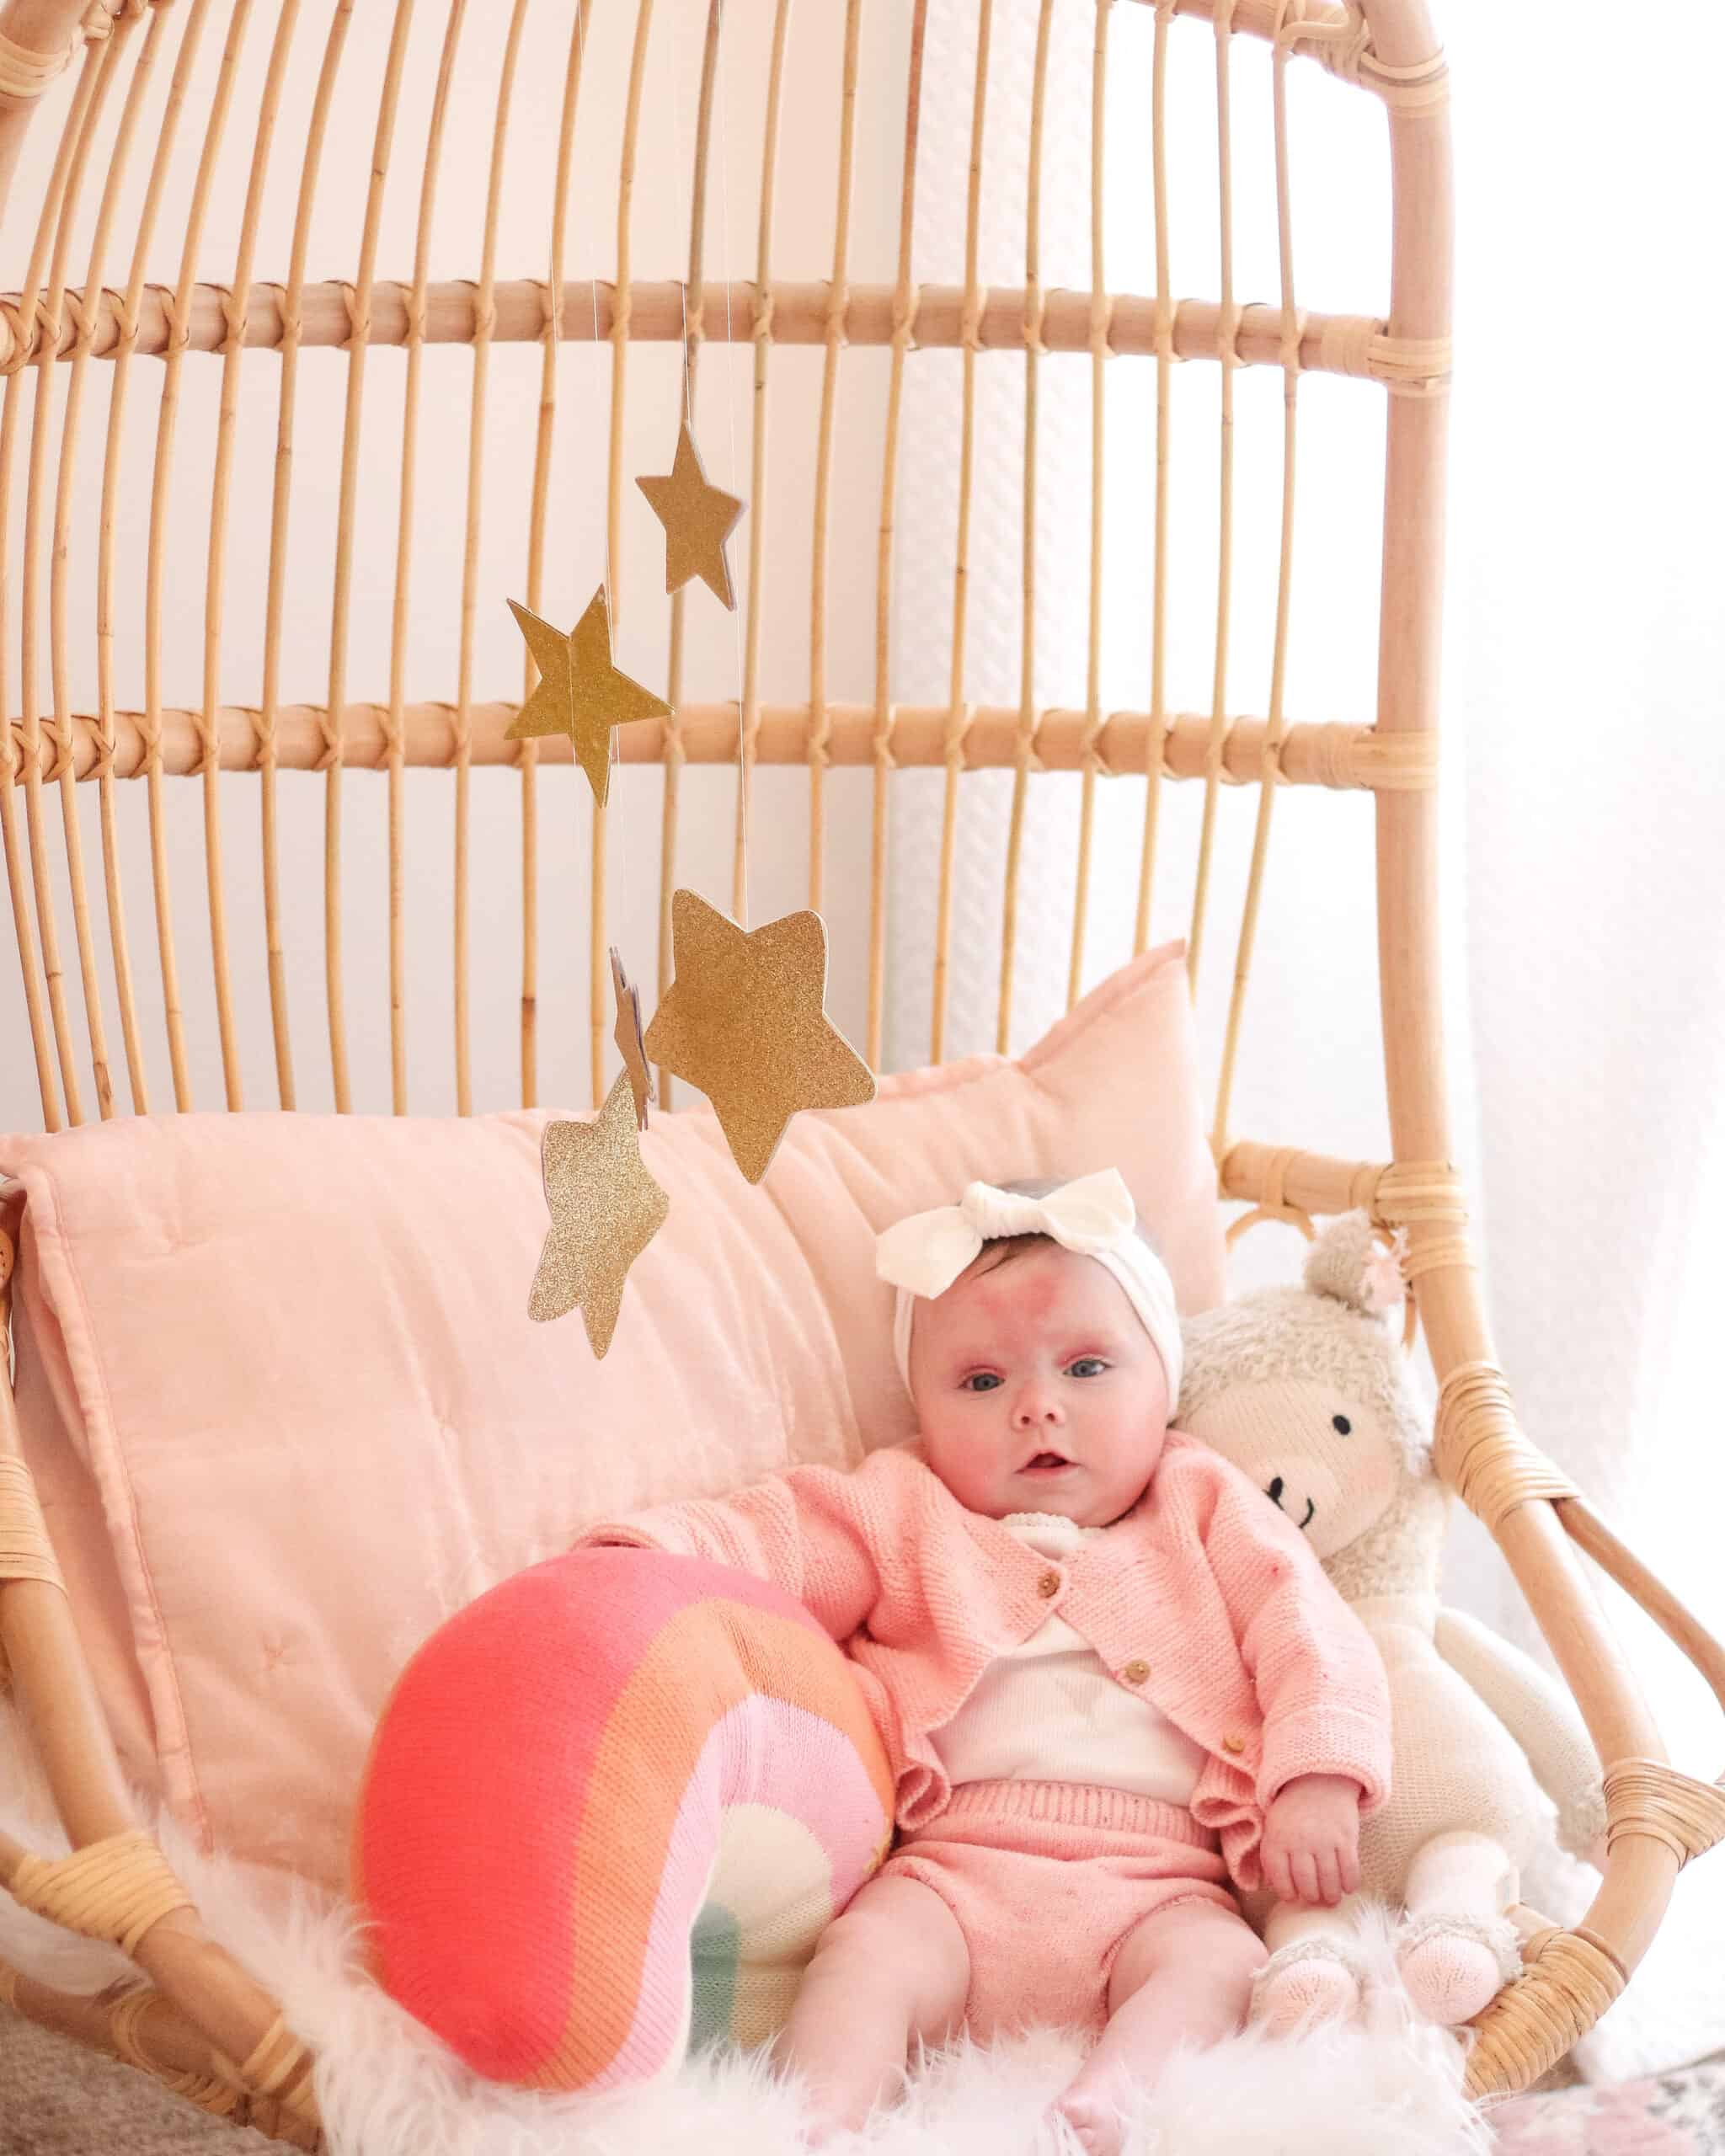 5 month old baby on Serena and Lilly hanging chair